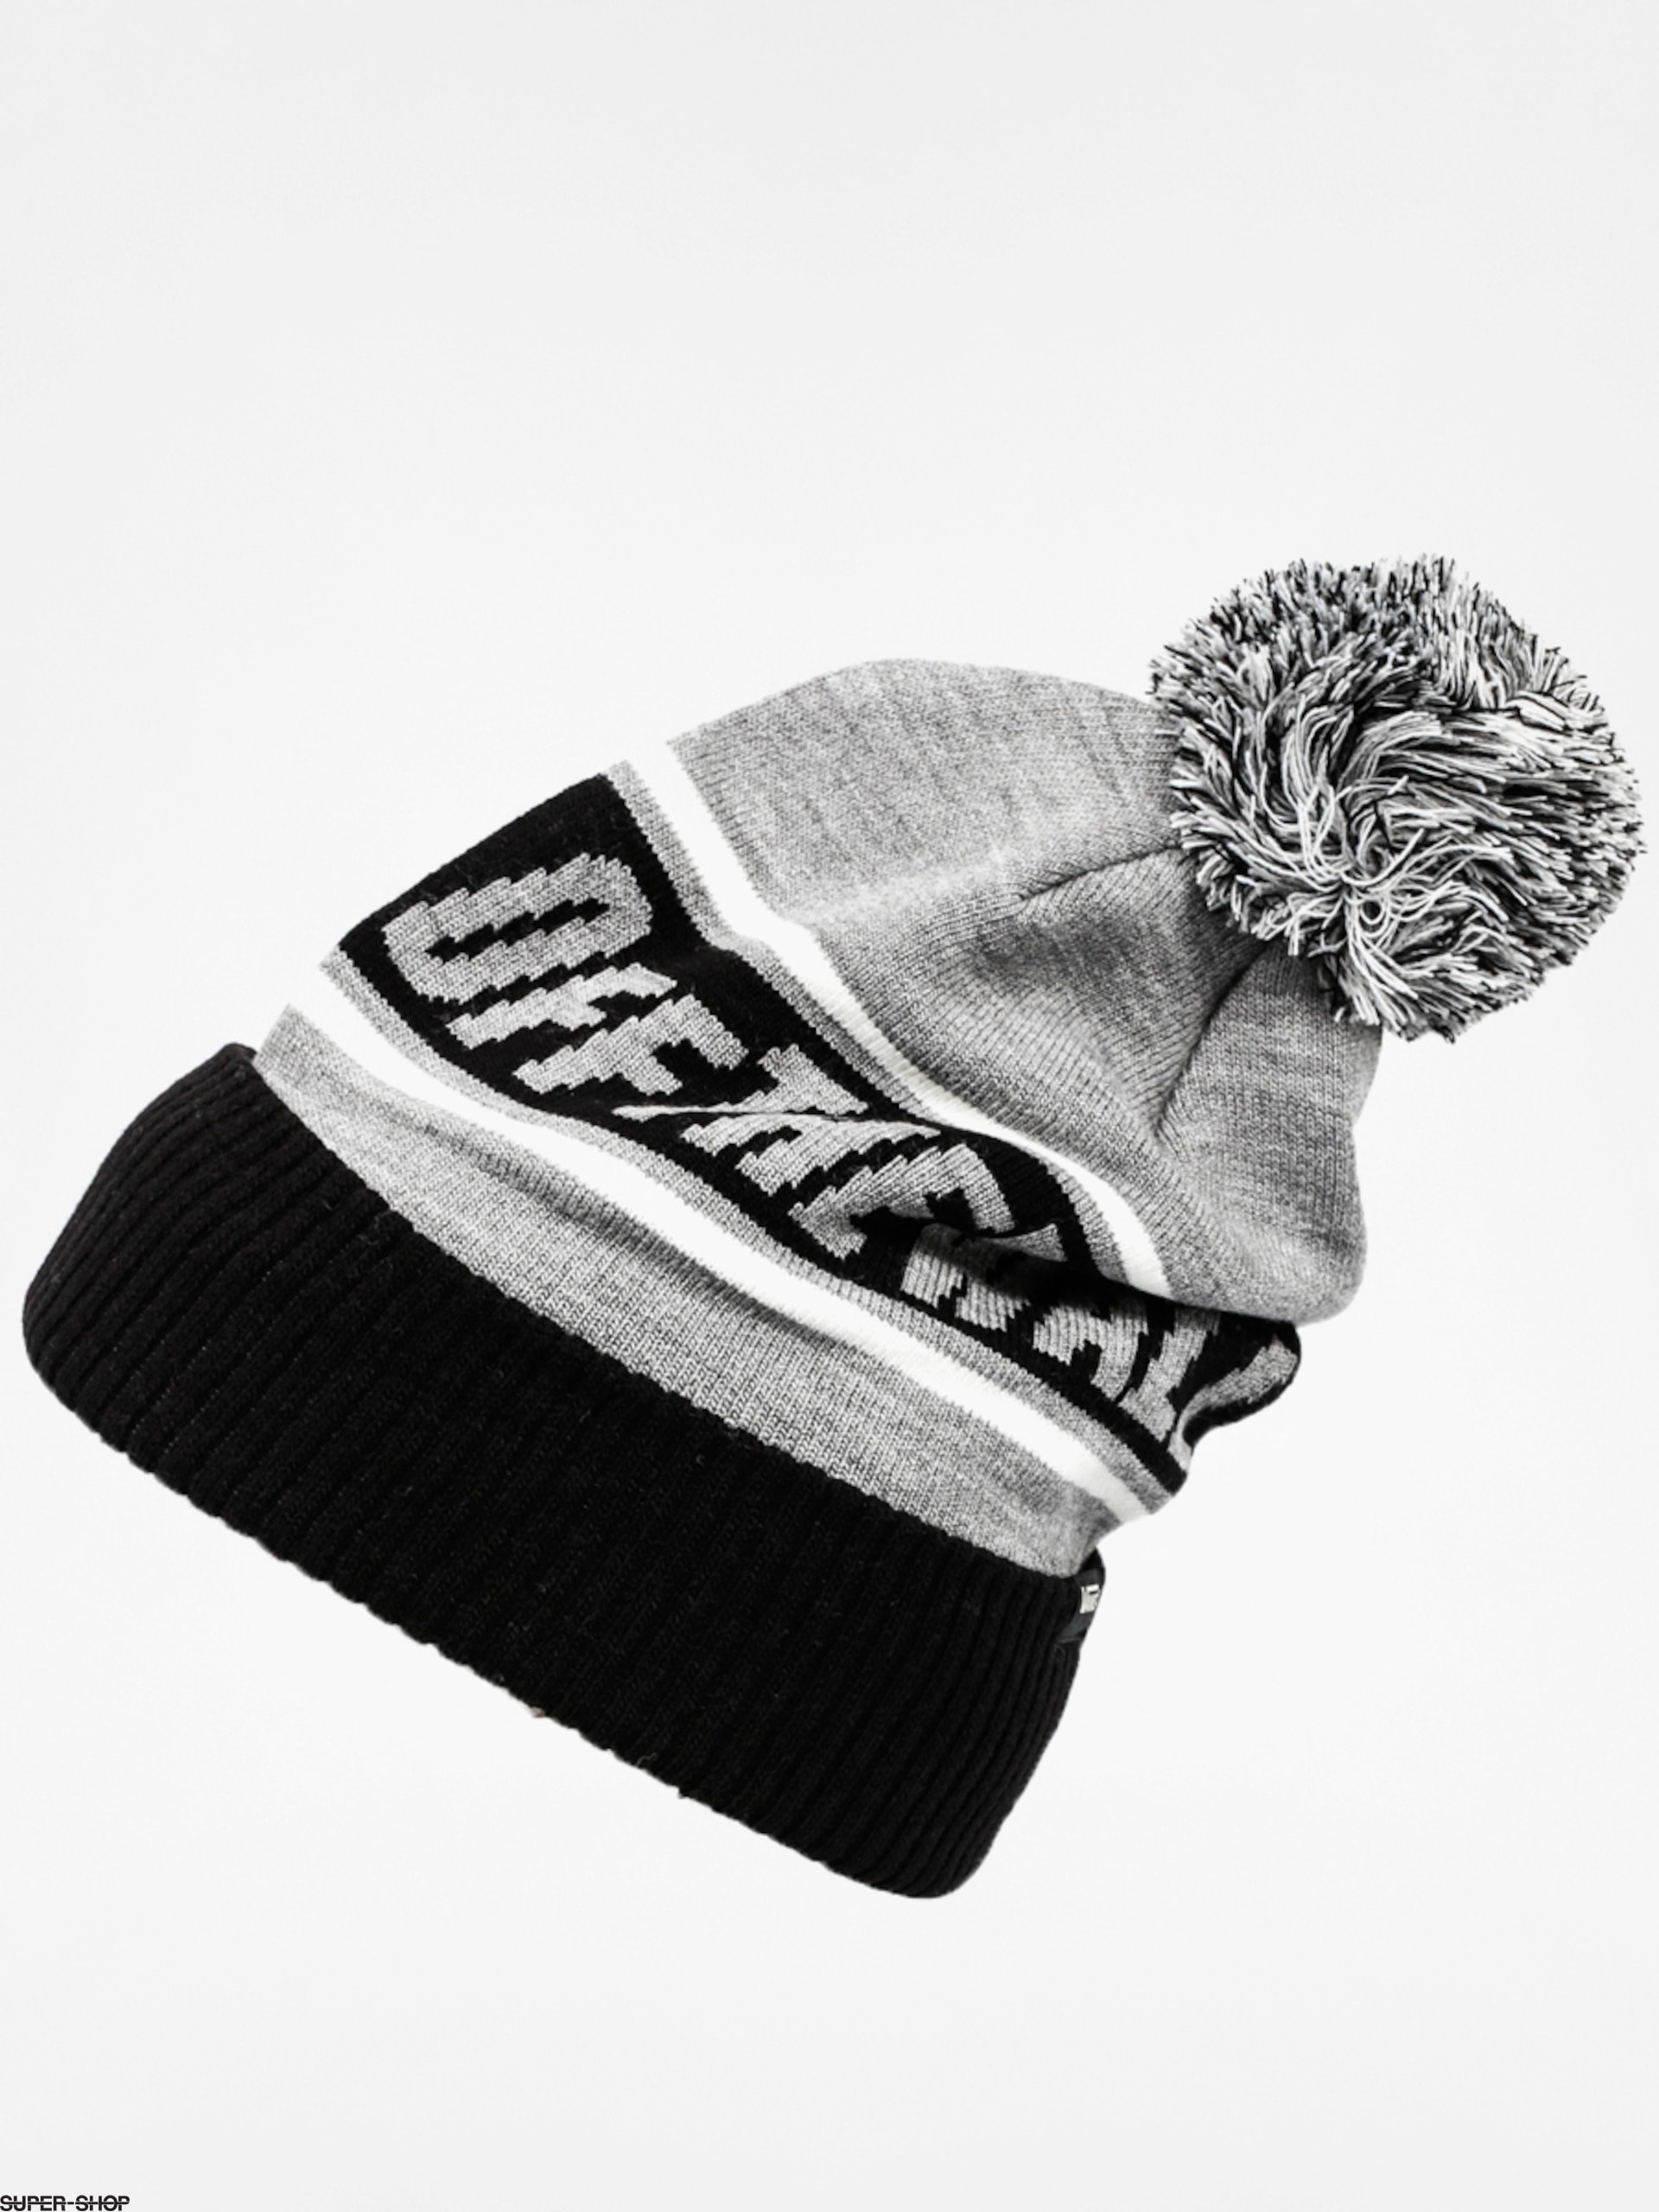 6c7ead6d806 795006-w1920-vans-beanie-off-the-wall-pom-beanie-black-heather-grey.jpg